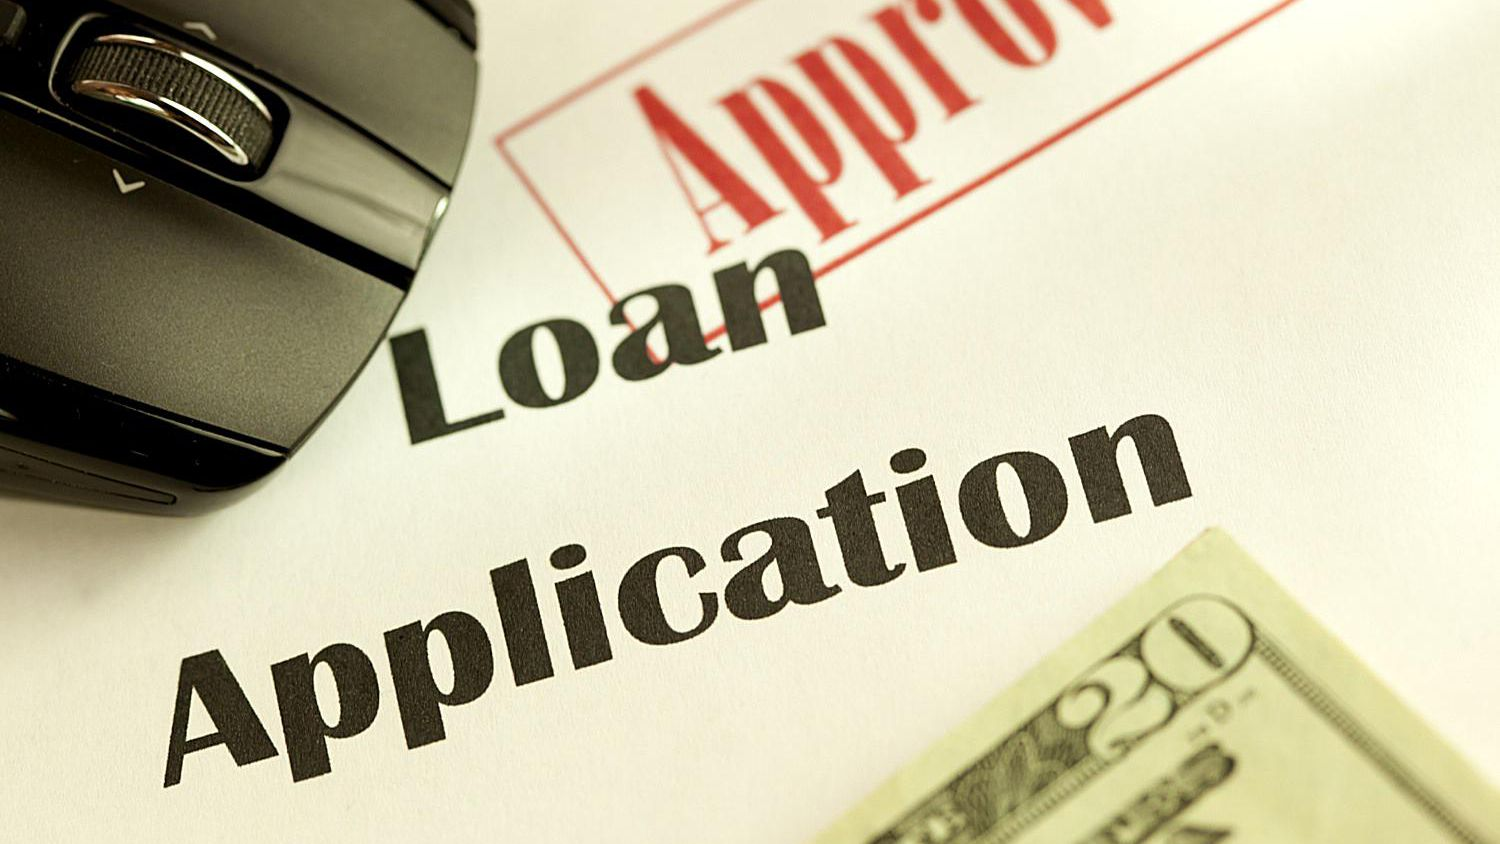 BUSINESS LOANS, URGENT LOAN